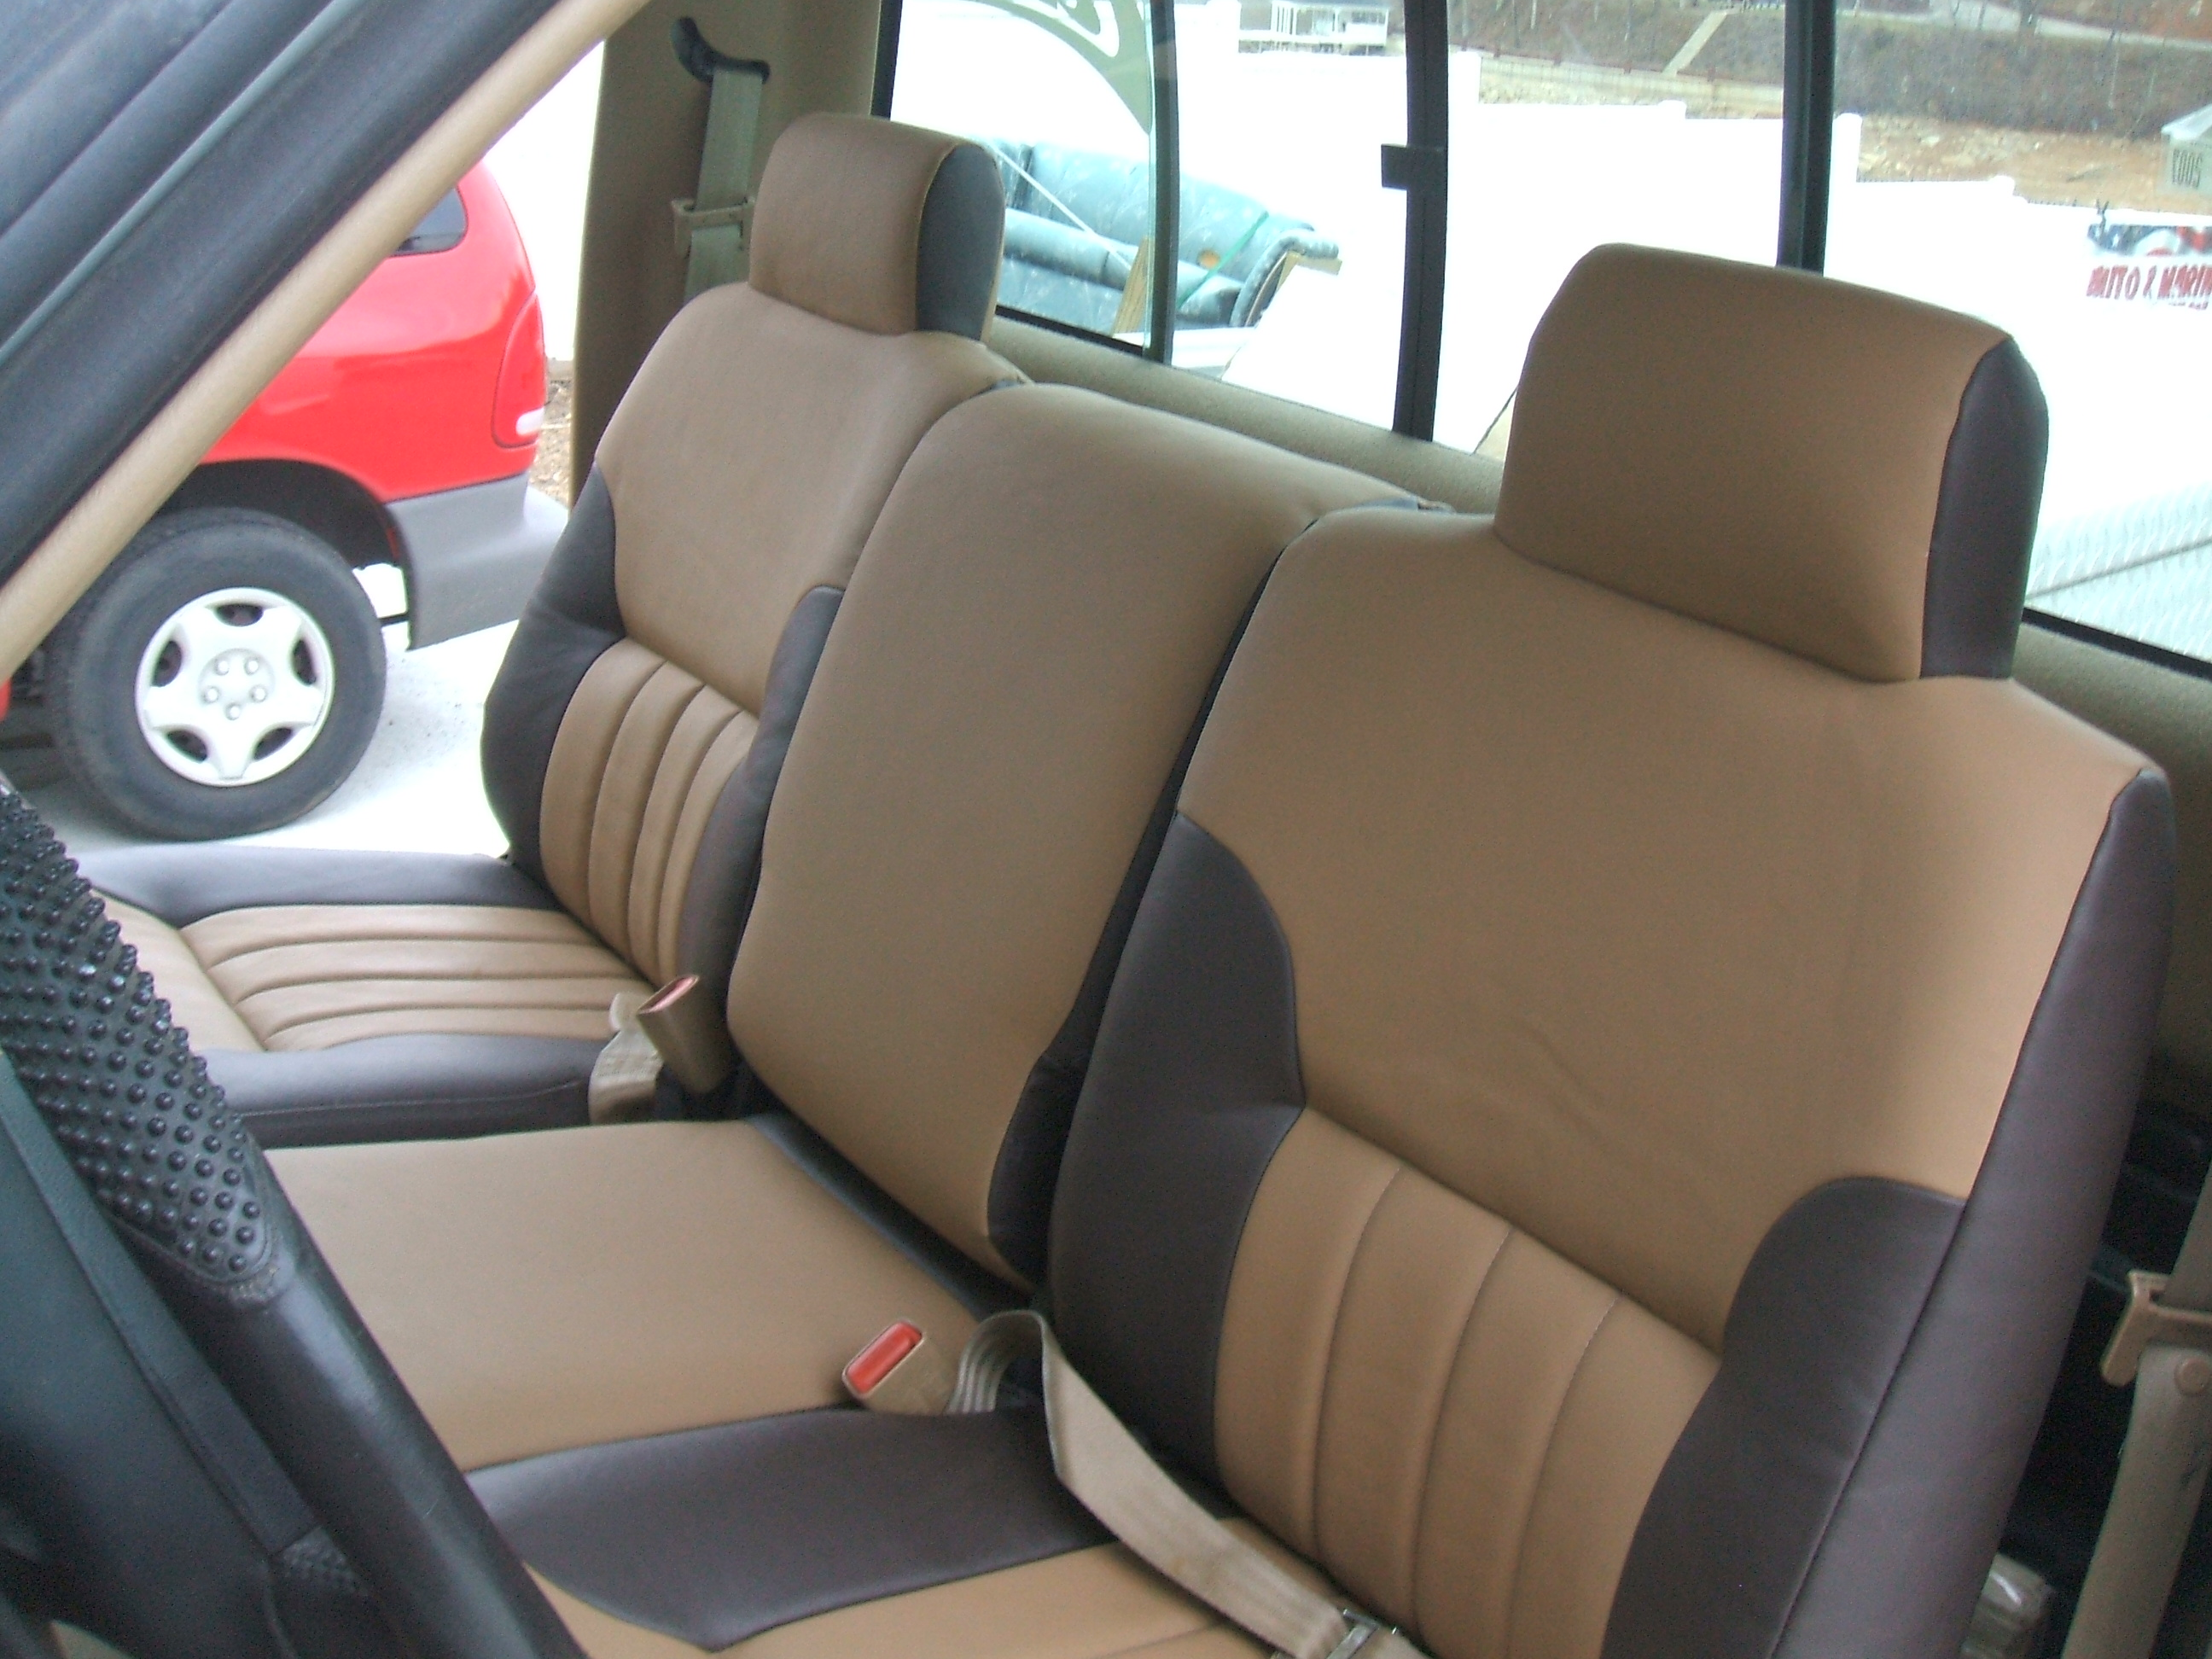 truck seat, truck seating, truck seat covers